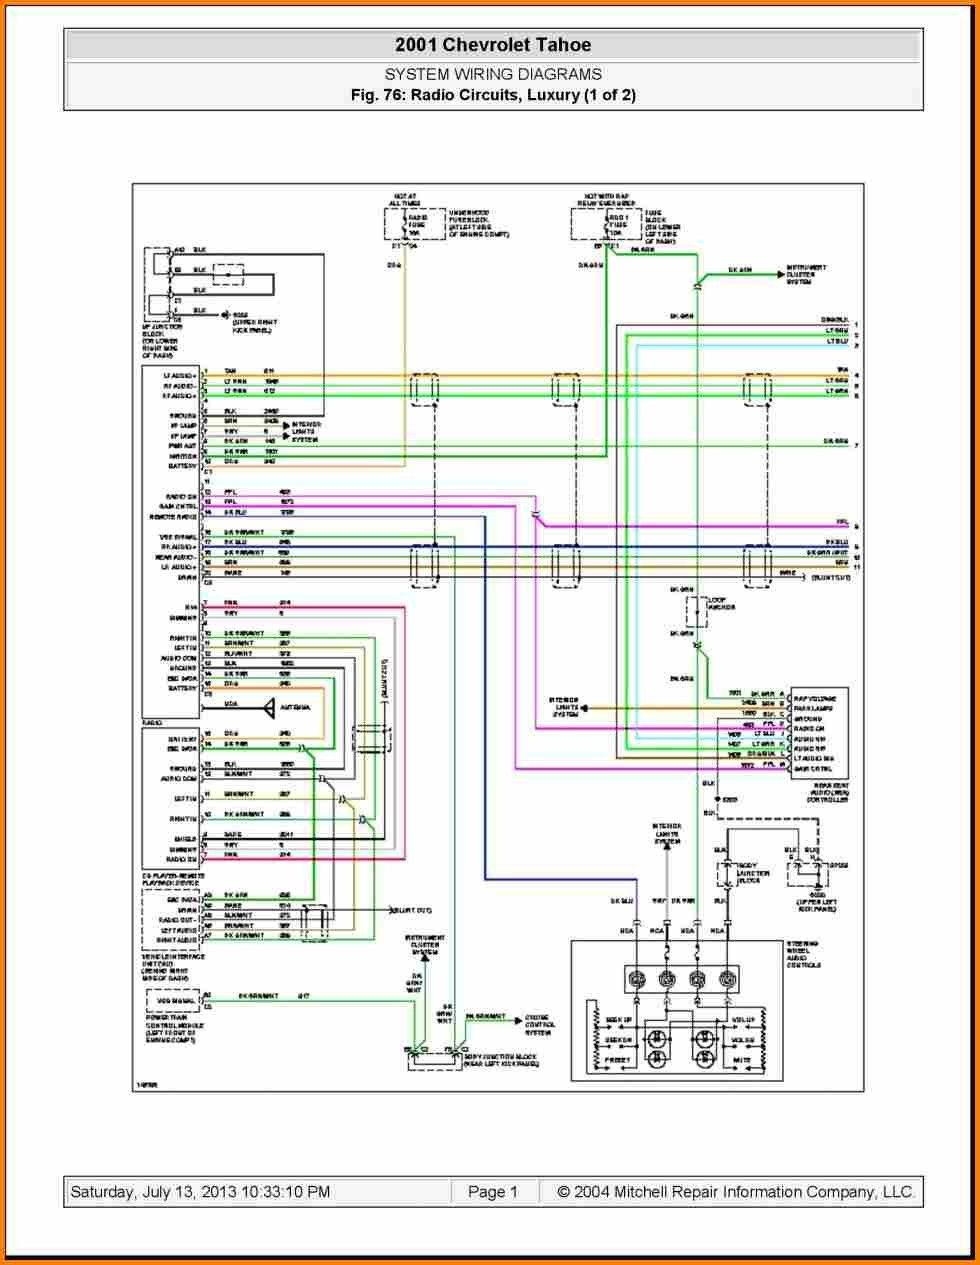 Unique 2004 Chevy Avalanche Radio Wiring Diagram In 2020 2003 Chevy Silverado Chevy Silverado 2004 Chevy Silverado